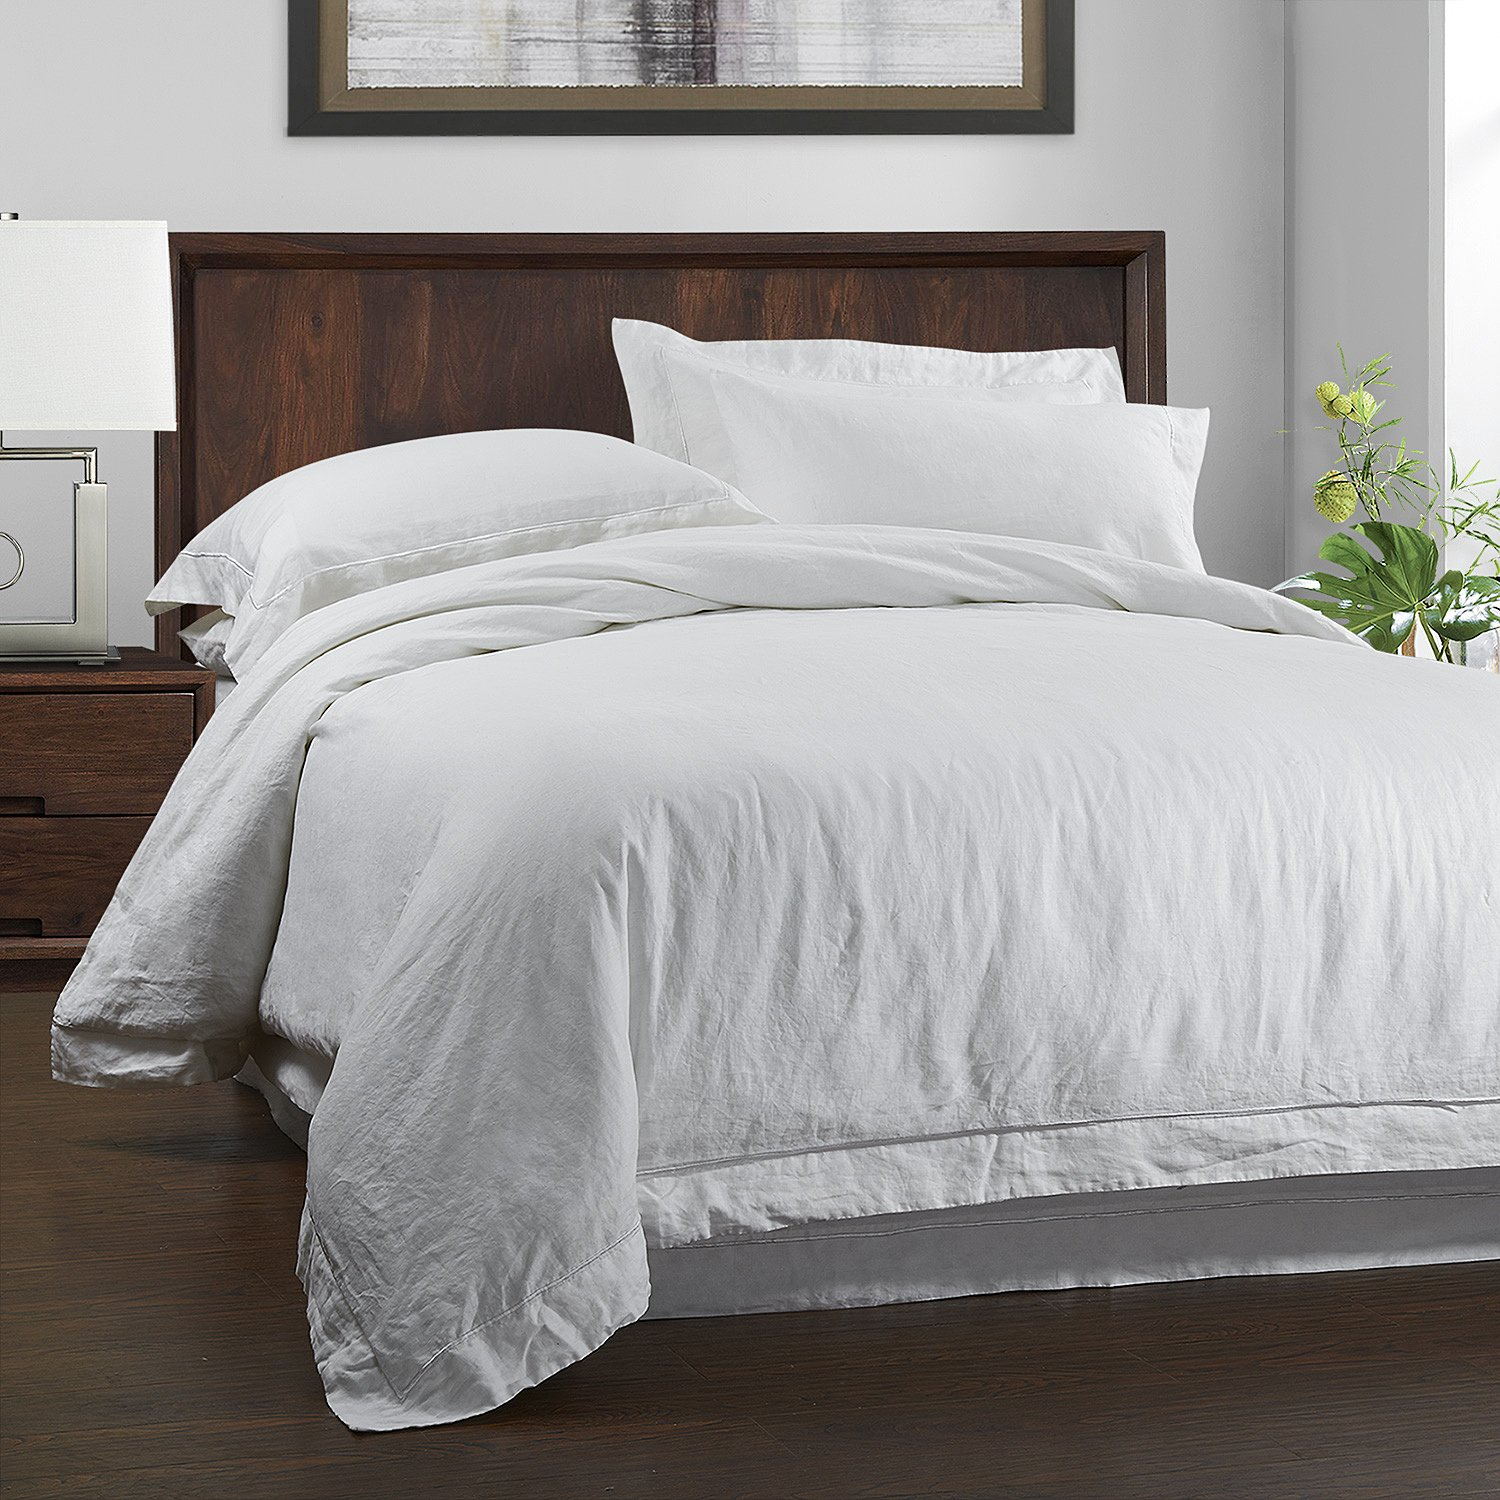 Amazon.com: Simpleu0026Opulence 100% Linen Duvet Cover Set 3 Piece White And  Grey Solid Wash King Size (1 Duvet Cover, 2 Pillowcases): Home U0026 Kitchen